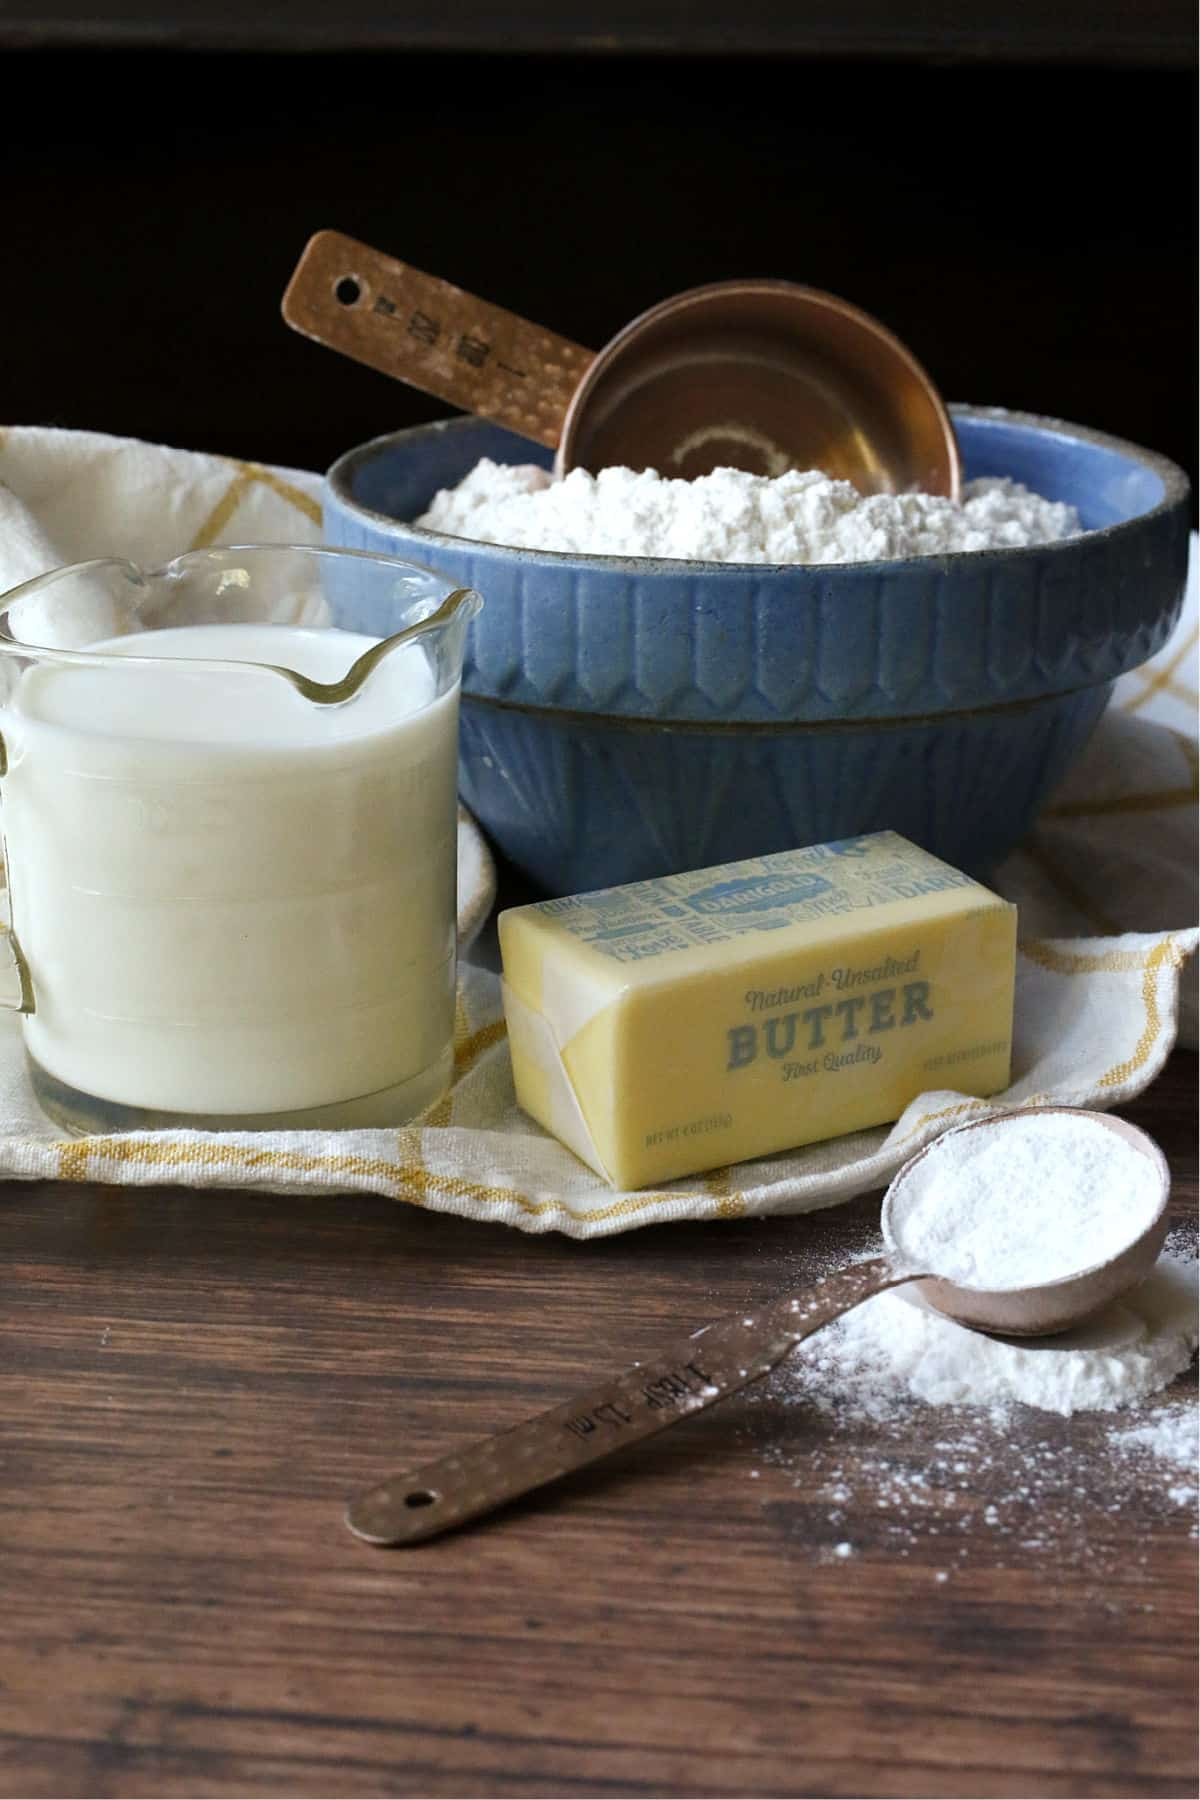 butter, flour, milk and baking powder for biscuits